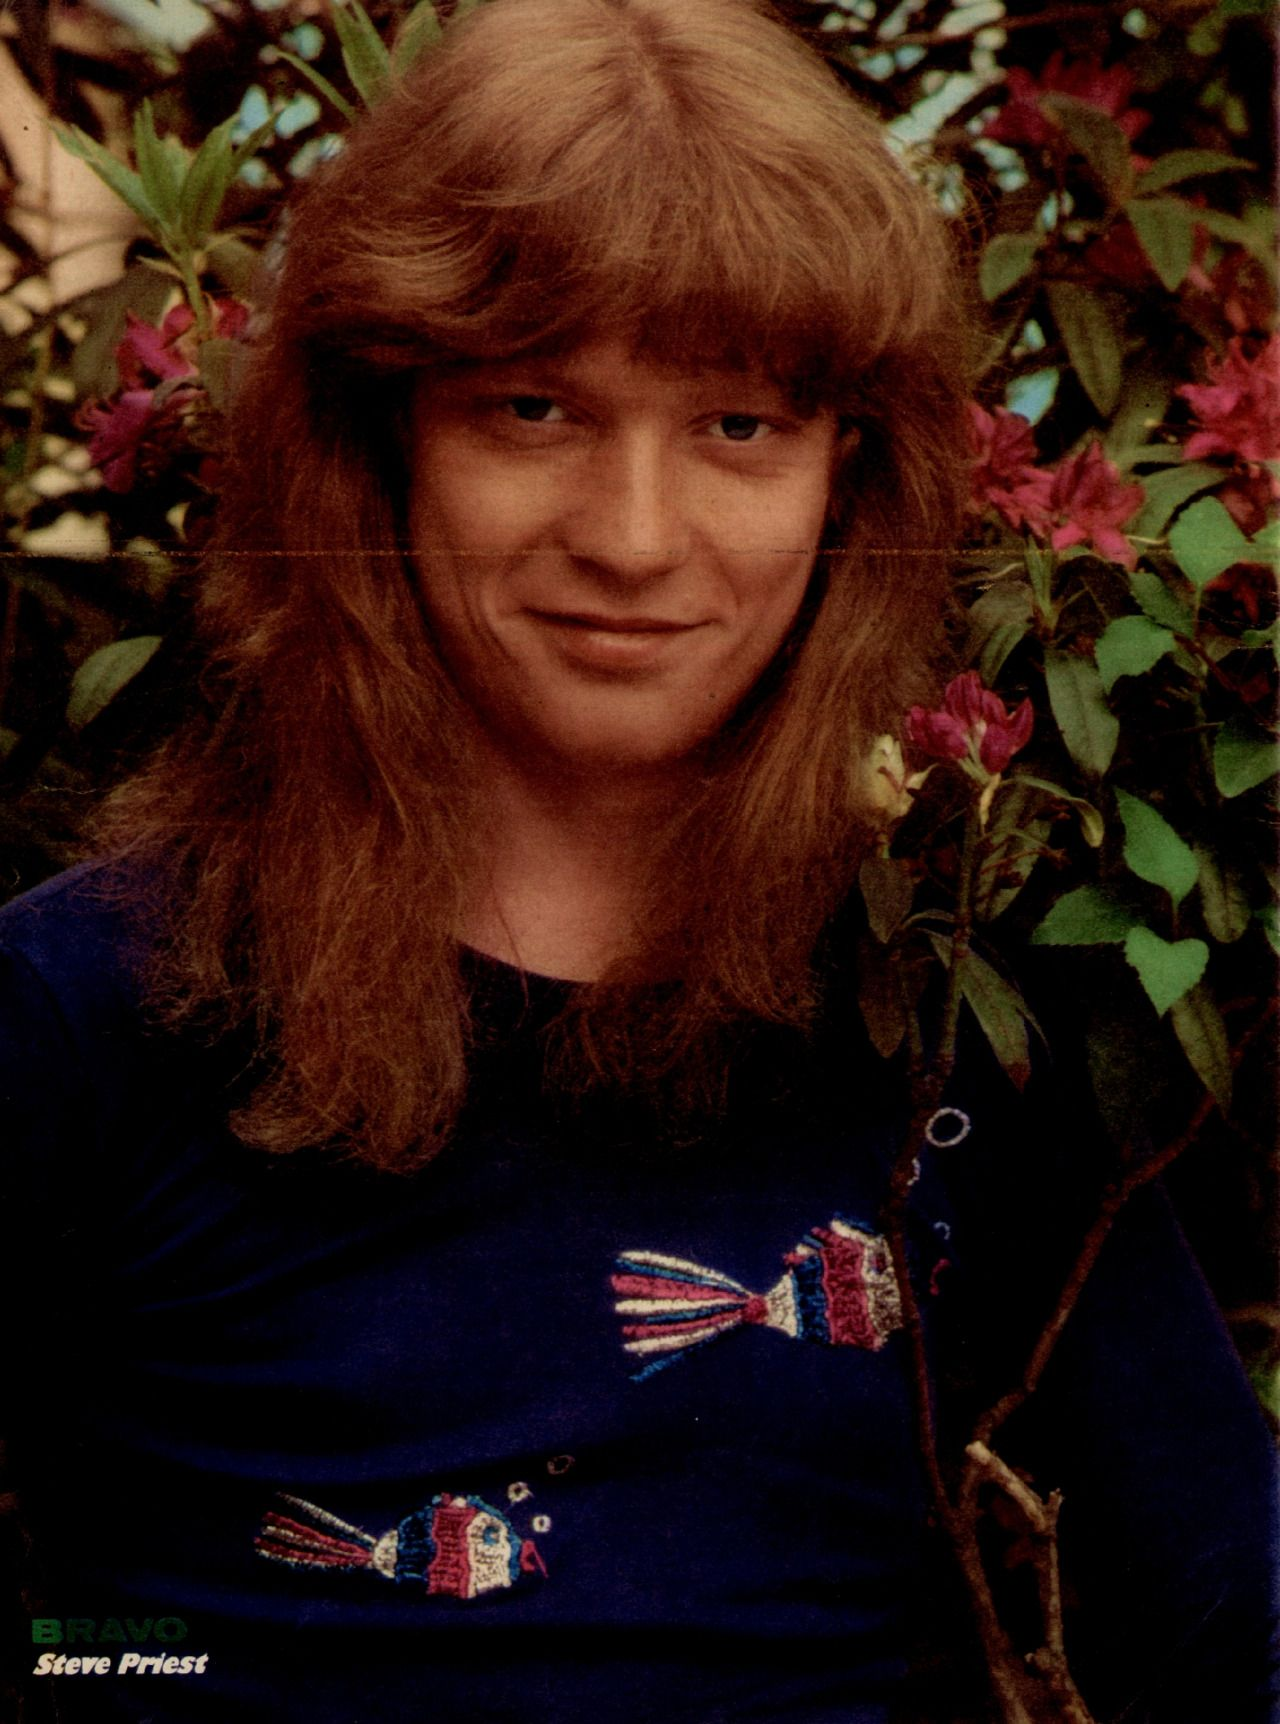 steve priest - photo #4